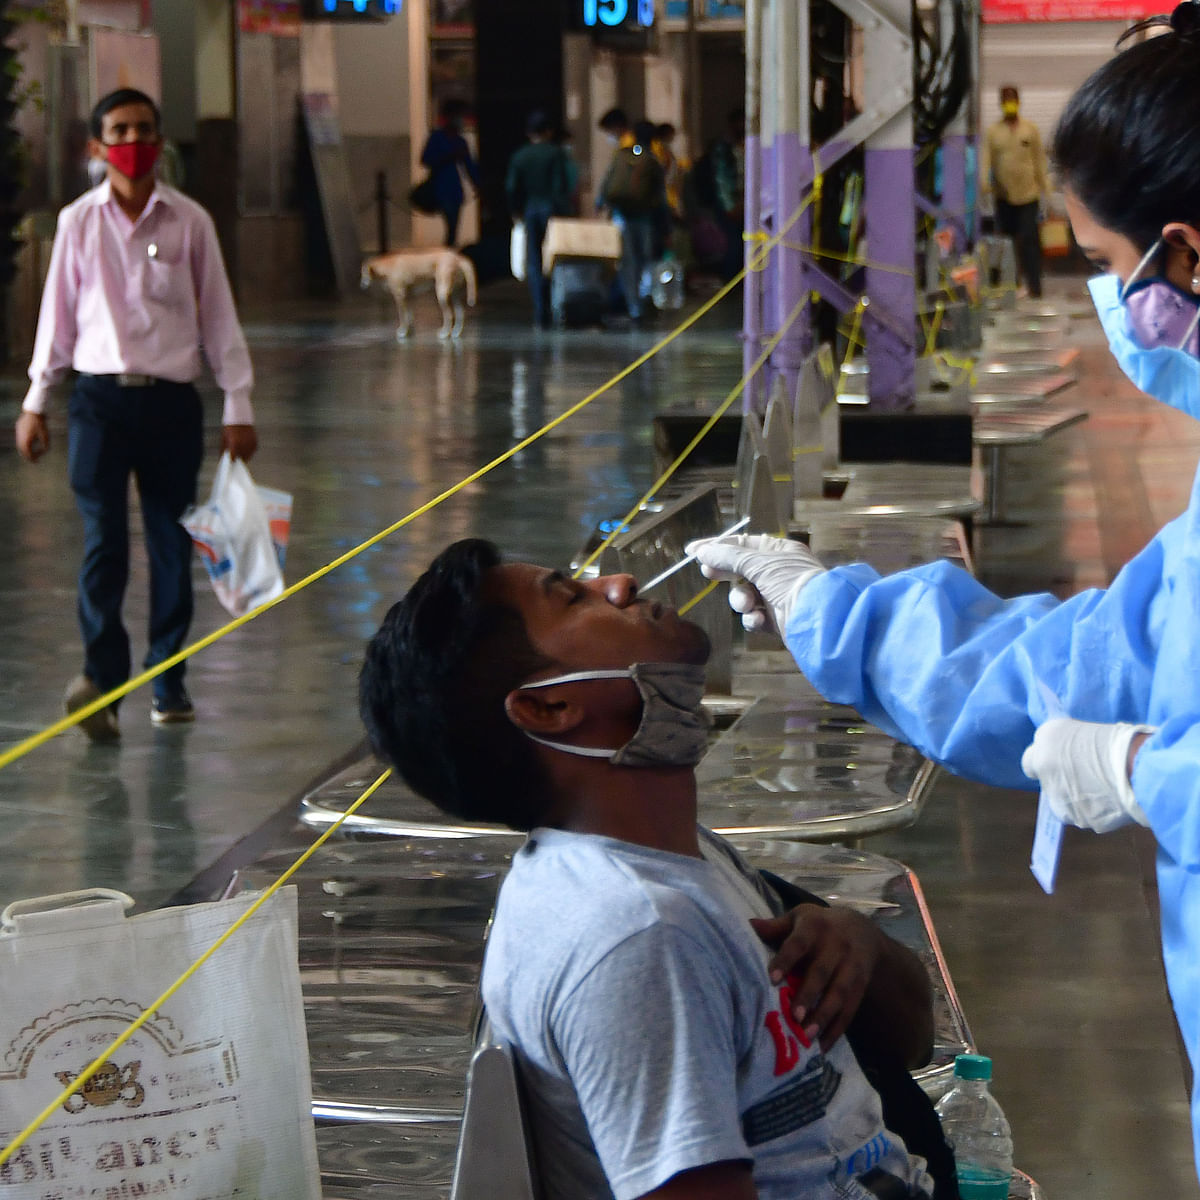 India records 42,640 new COVID-19 cases, lowest in 91 days